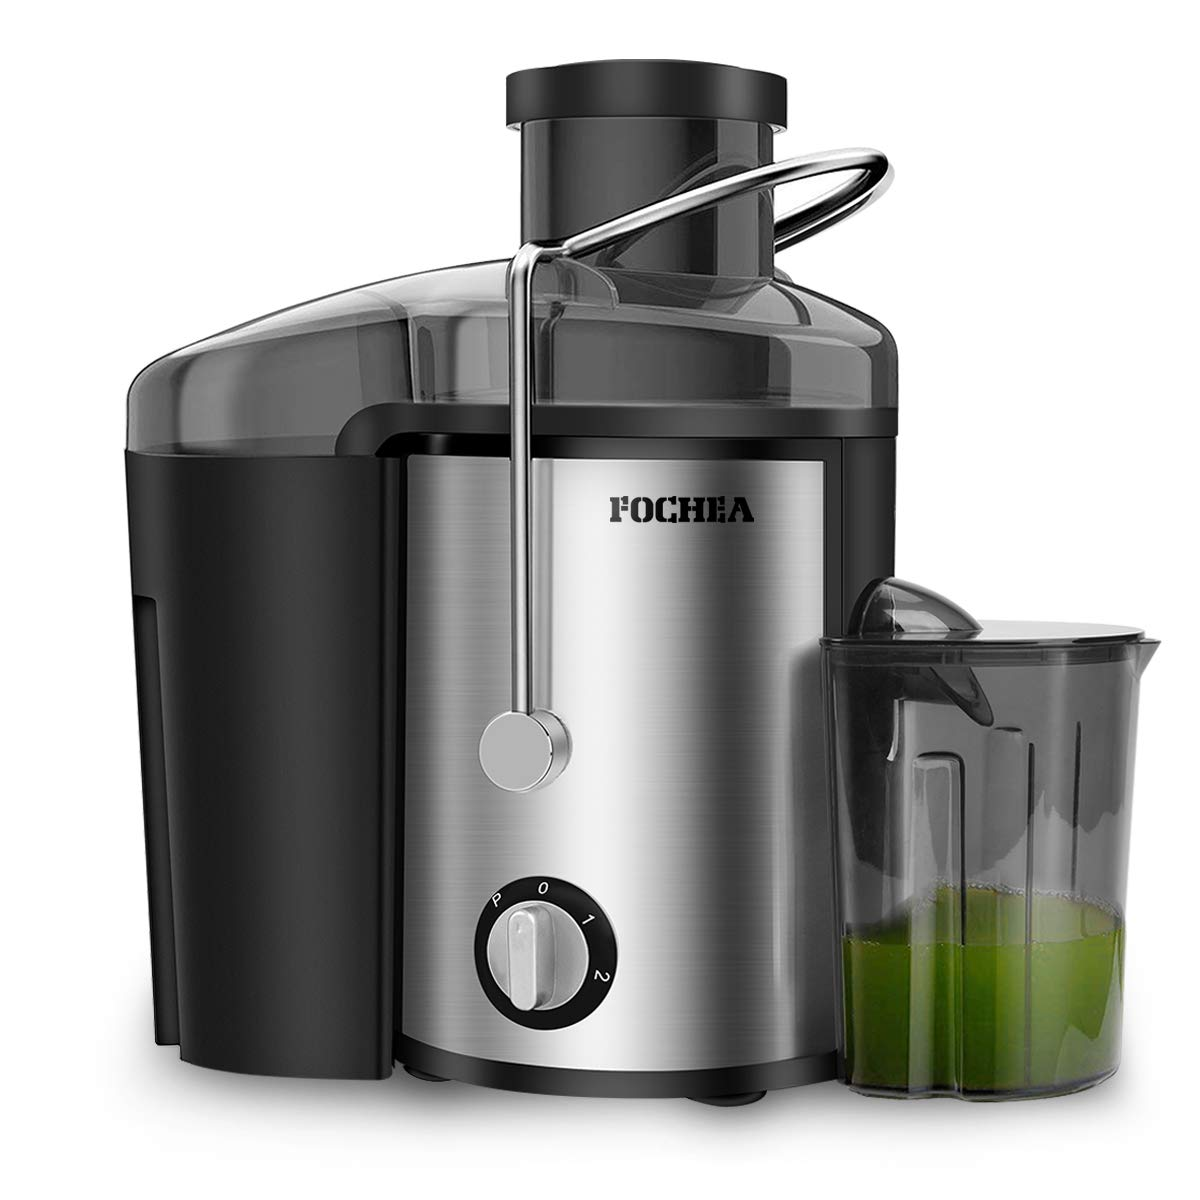 Juice Extractor, FOCHEA 400W Stainless Steel Centrifugal Juicer with 65MM Wide Mouth, 3 Speed Setting Juicer Machine with 450ml Juice Container & Cleaning Brush for Fruits and Vegetables